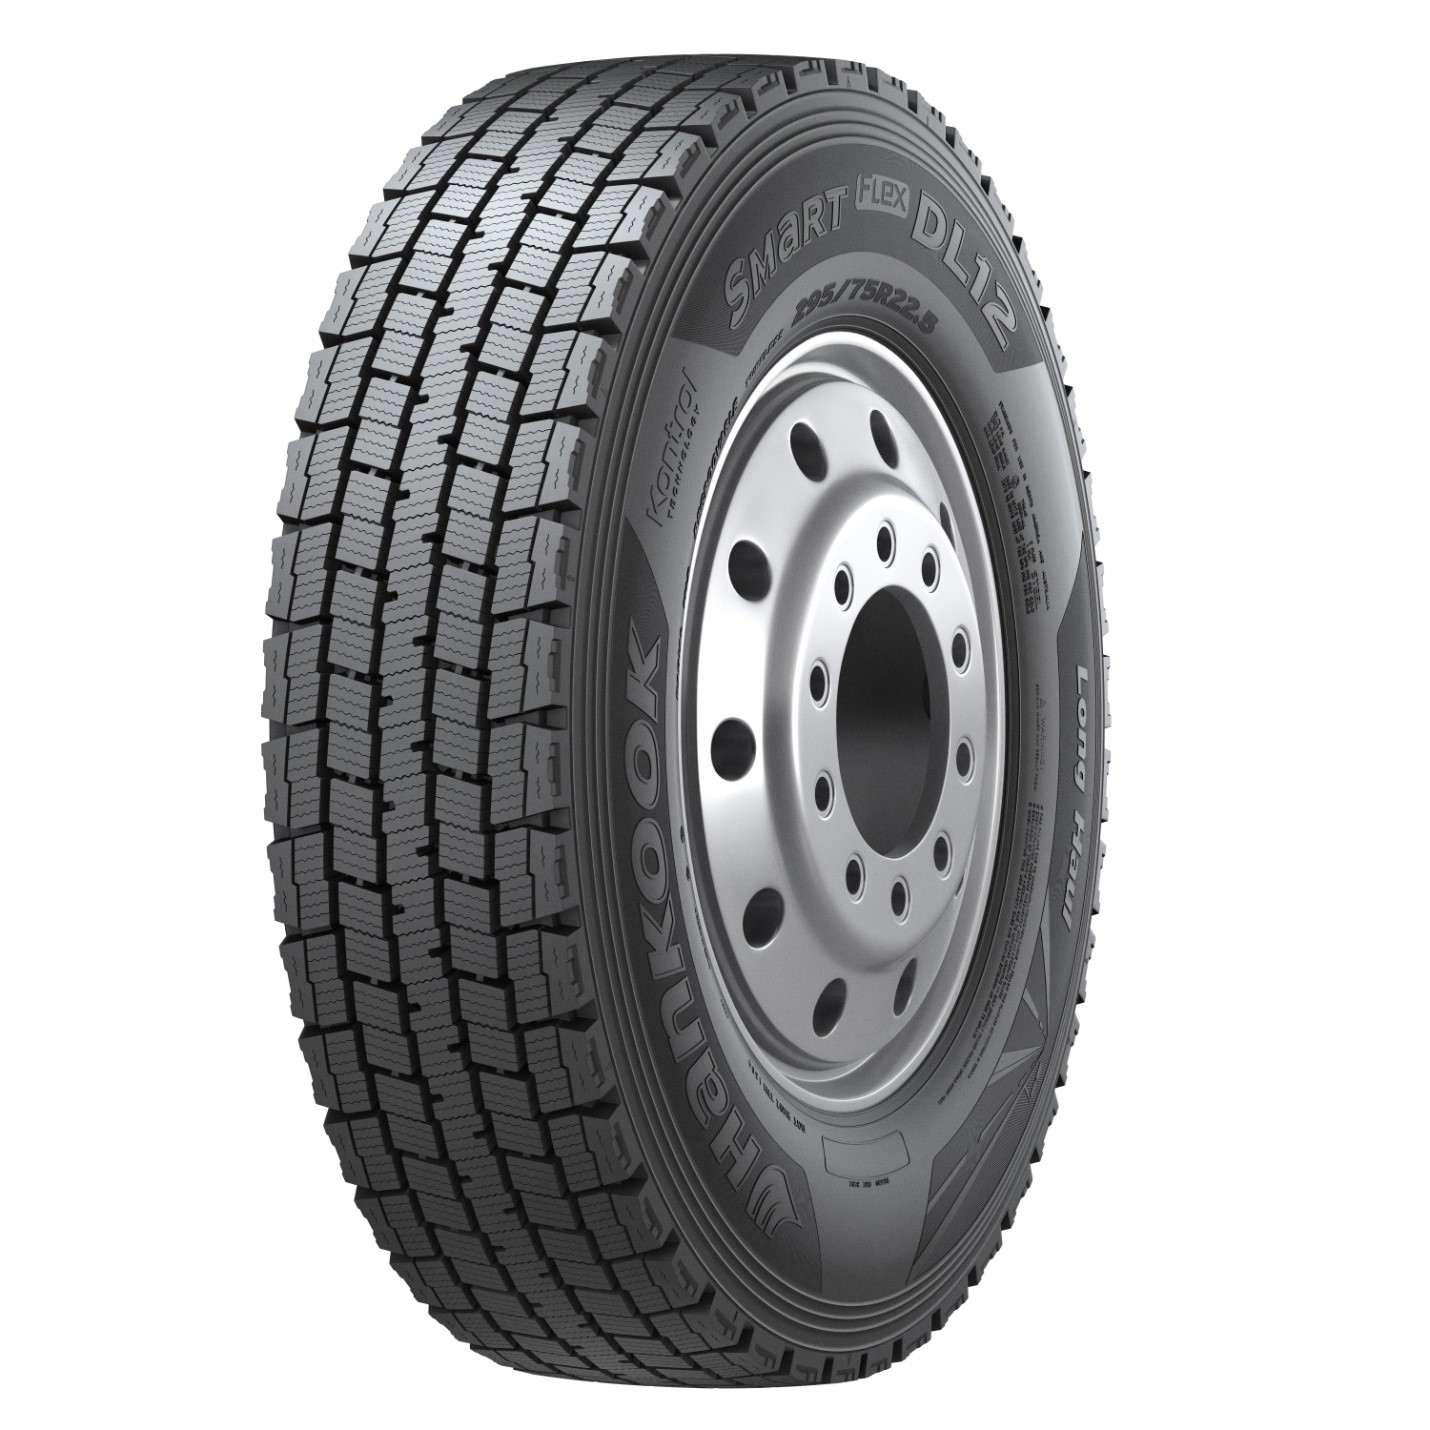 Hankook Truck Tires >> We sell Semi Truck Tires | Commercial Tires | Tires-easy.com